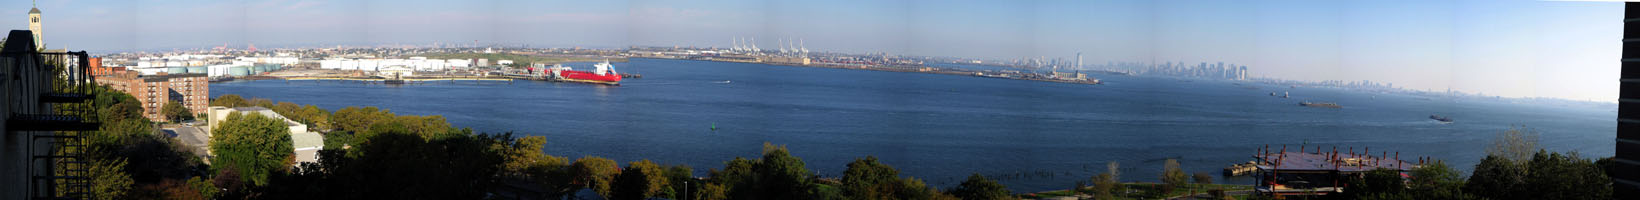 Panorama view of New York Harbor from the roof